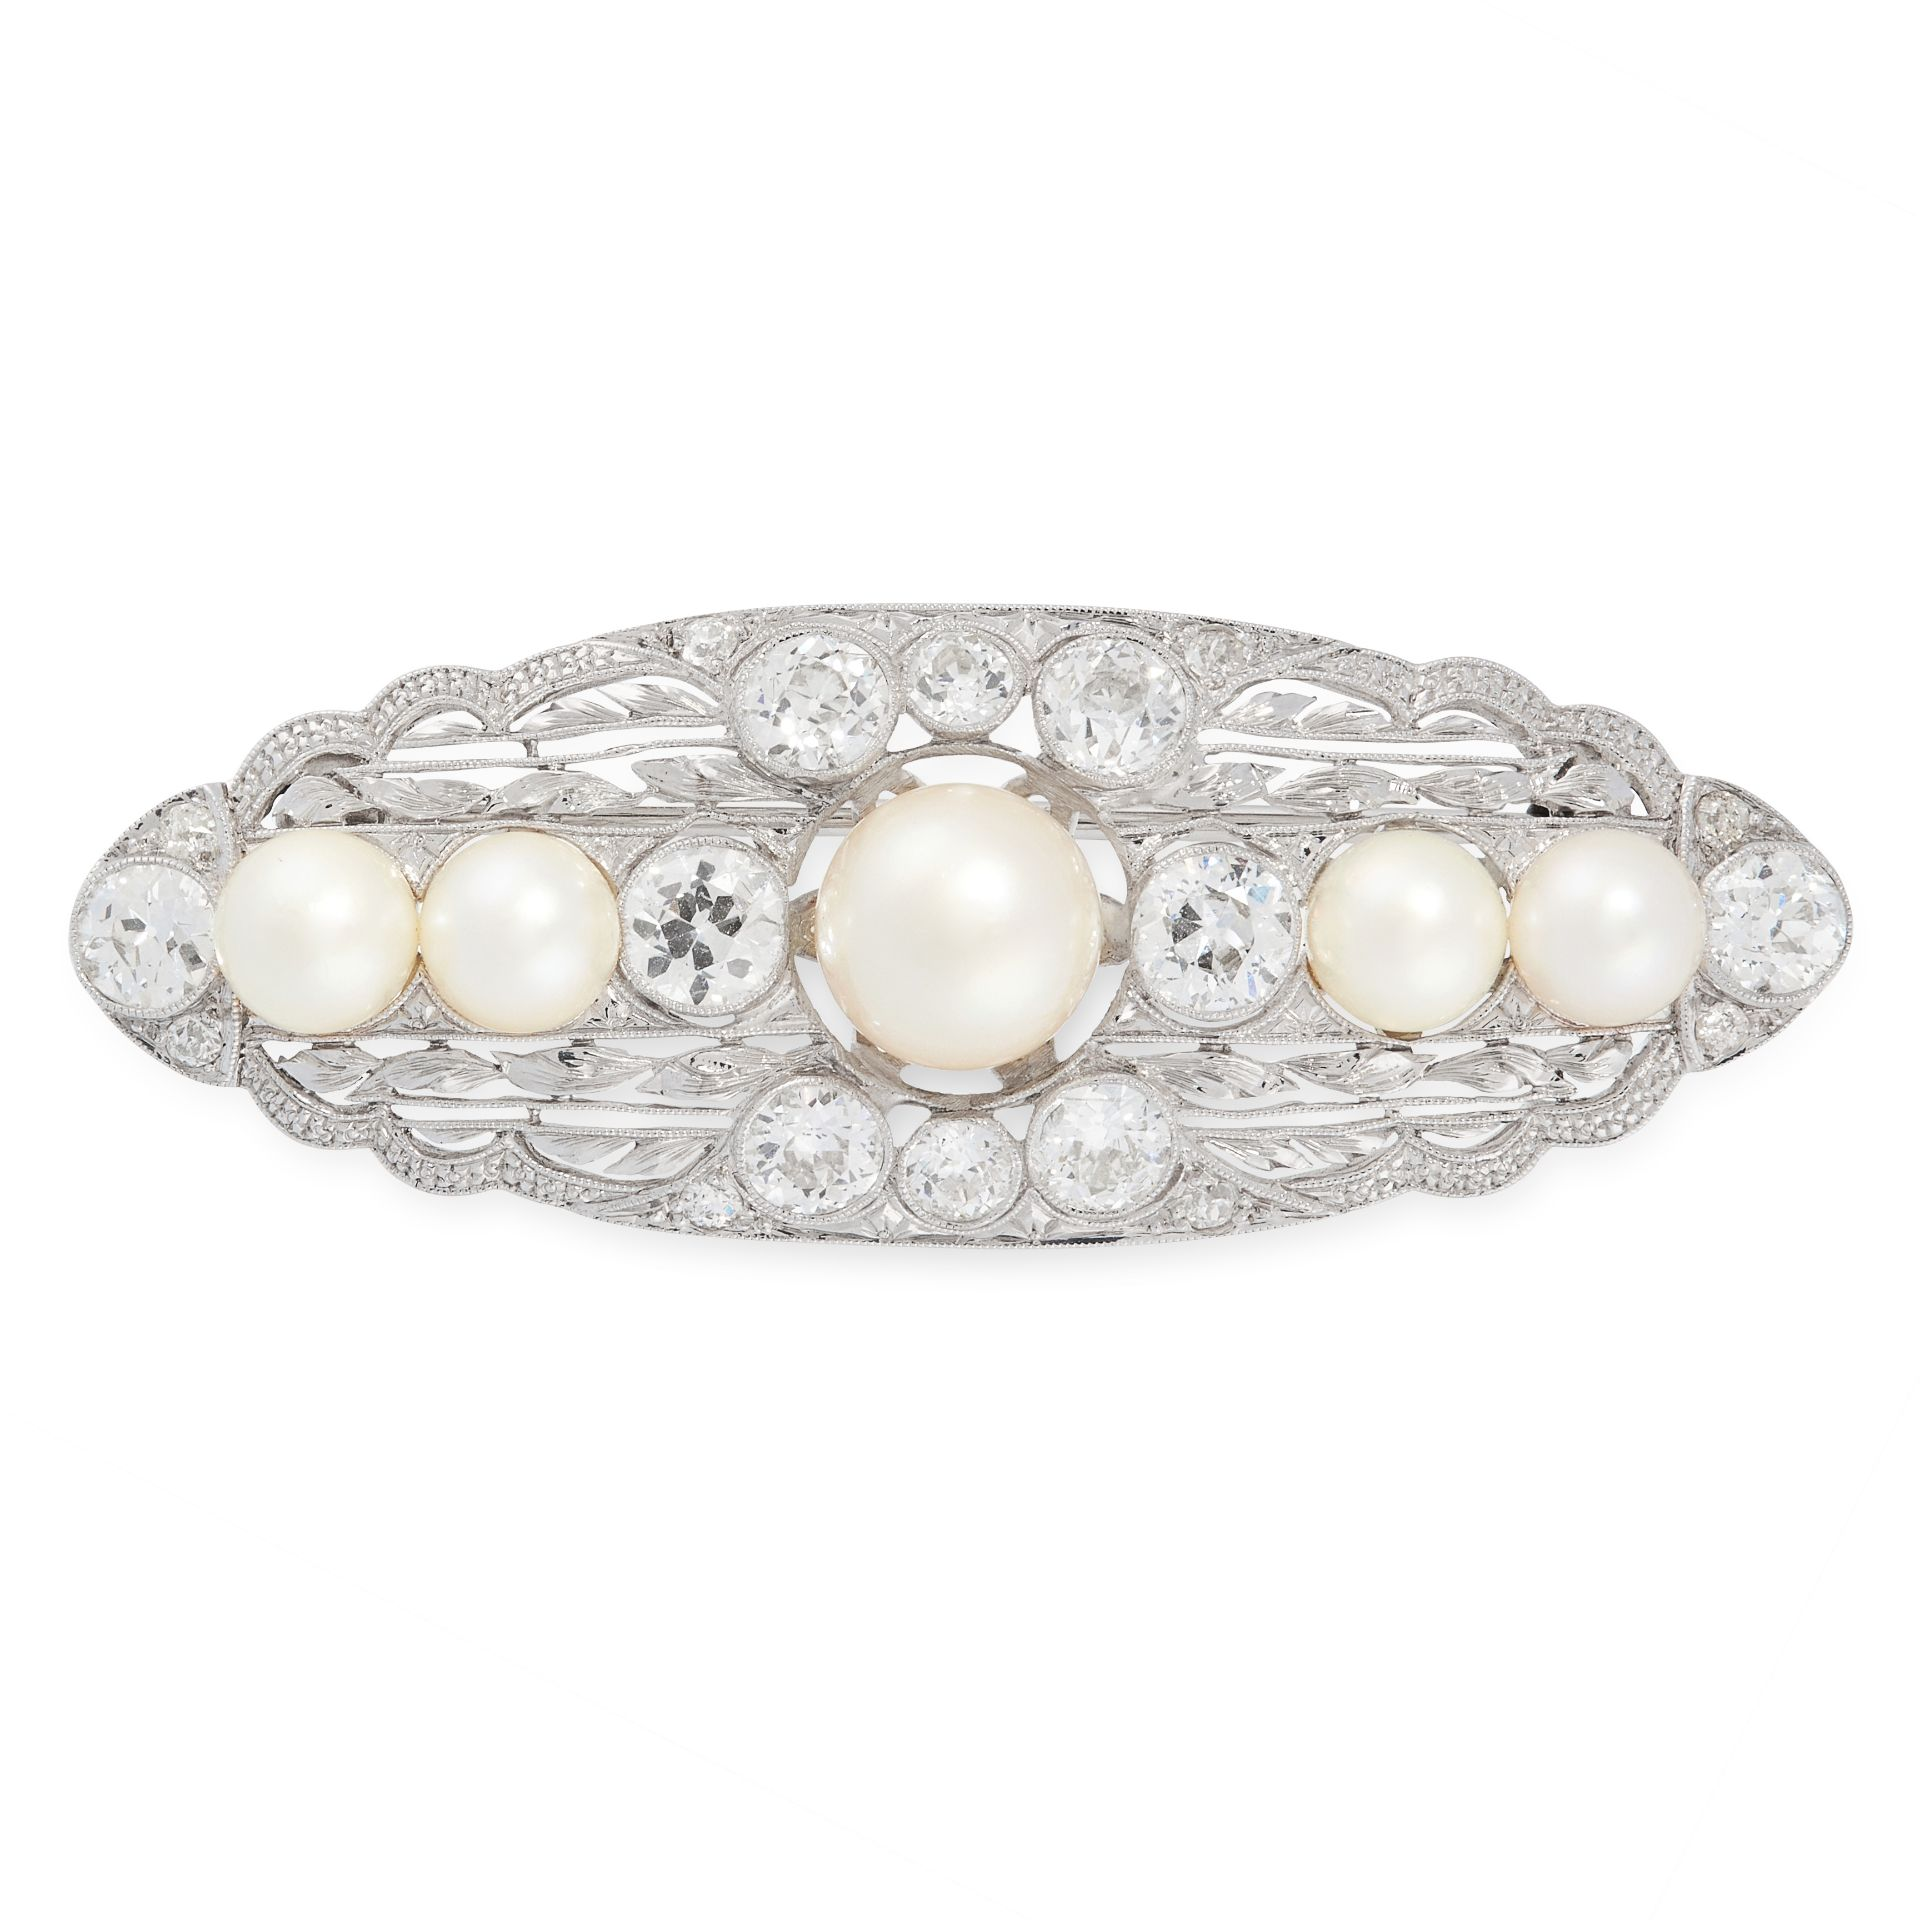 A PEARL AND DIAMOND BROOCH, EARLY 20TH CENTURY the oval body set with five graduated pearls